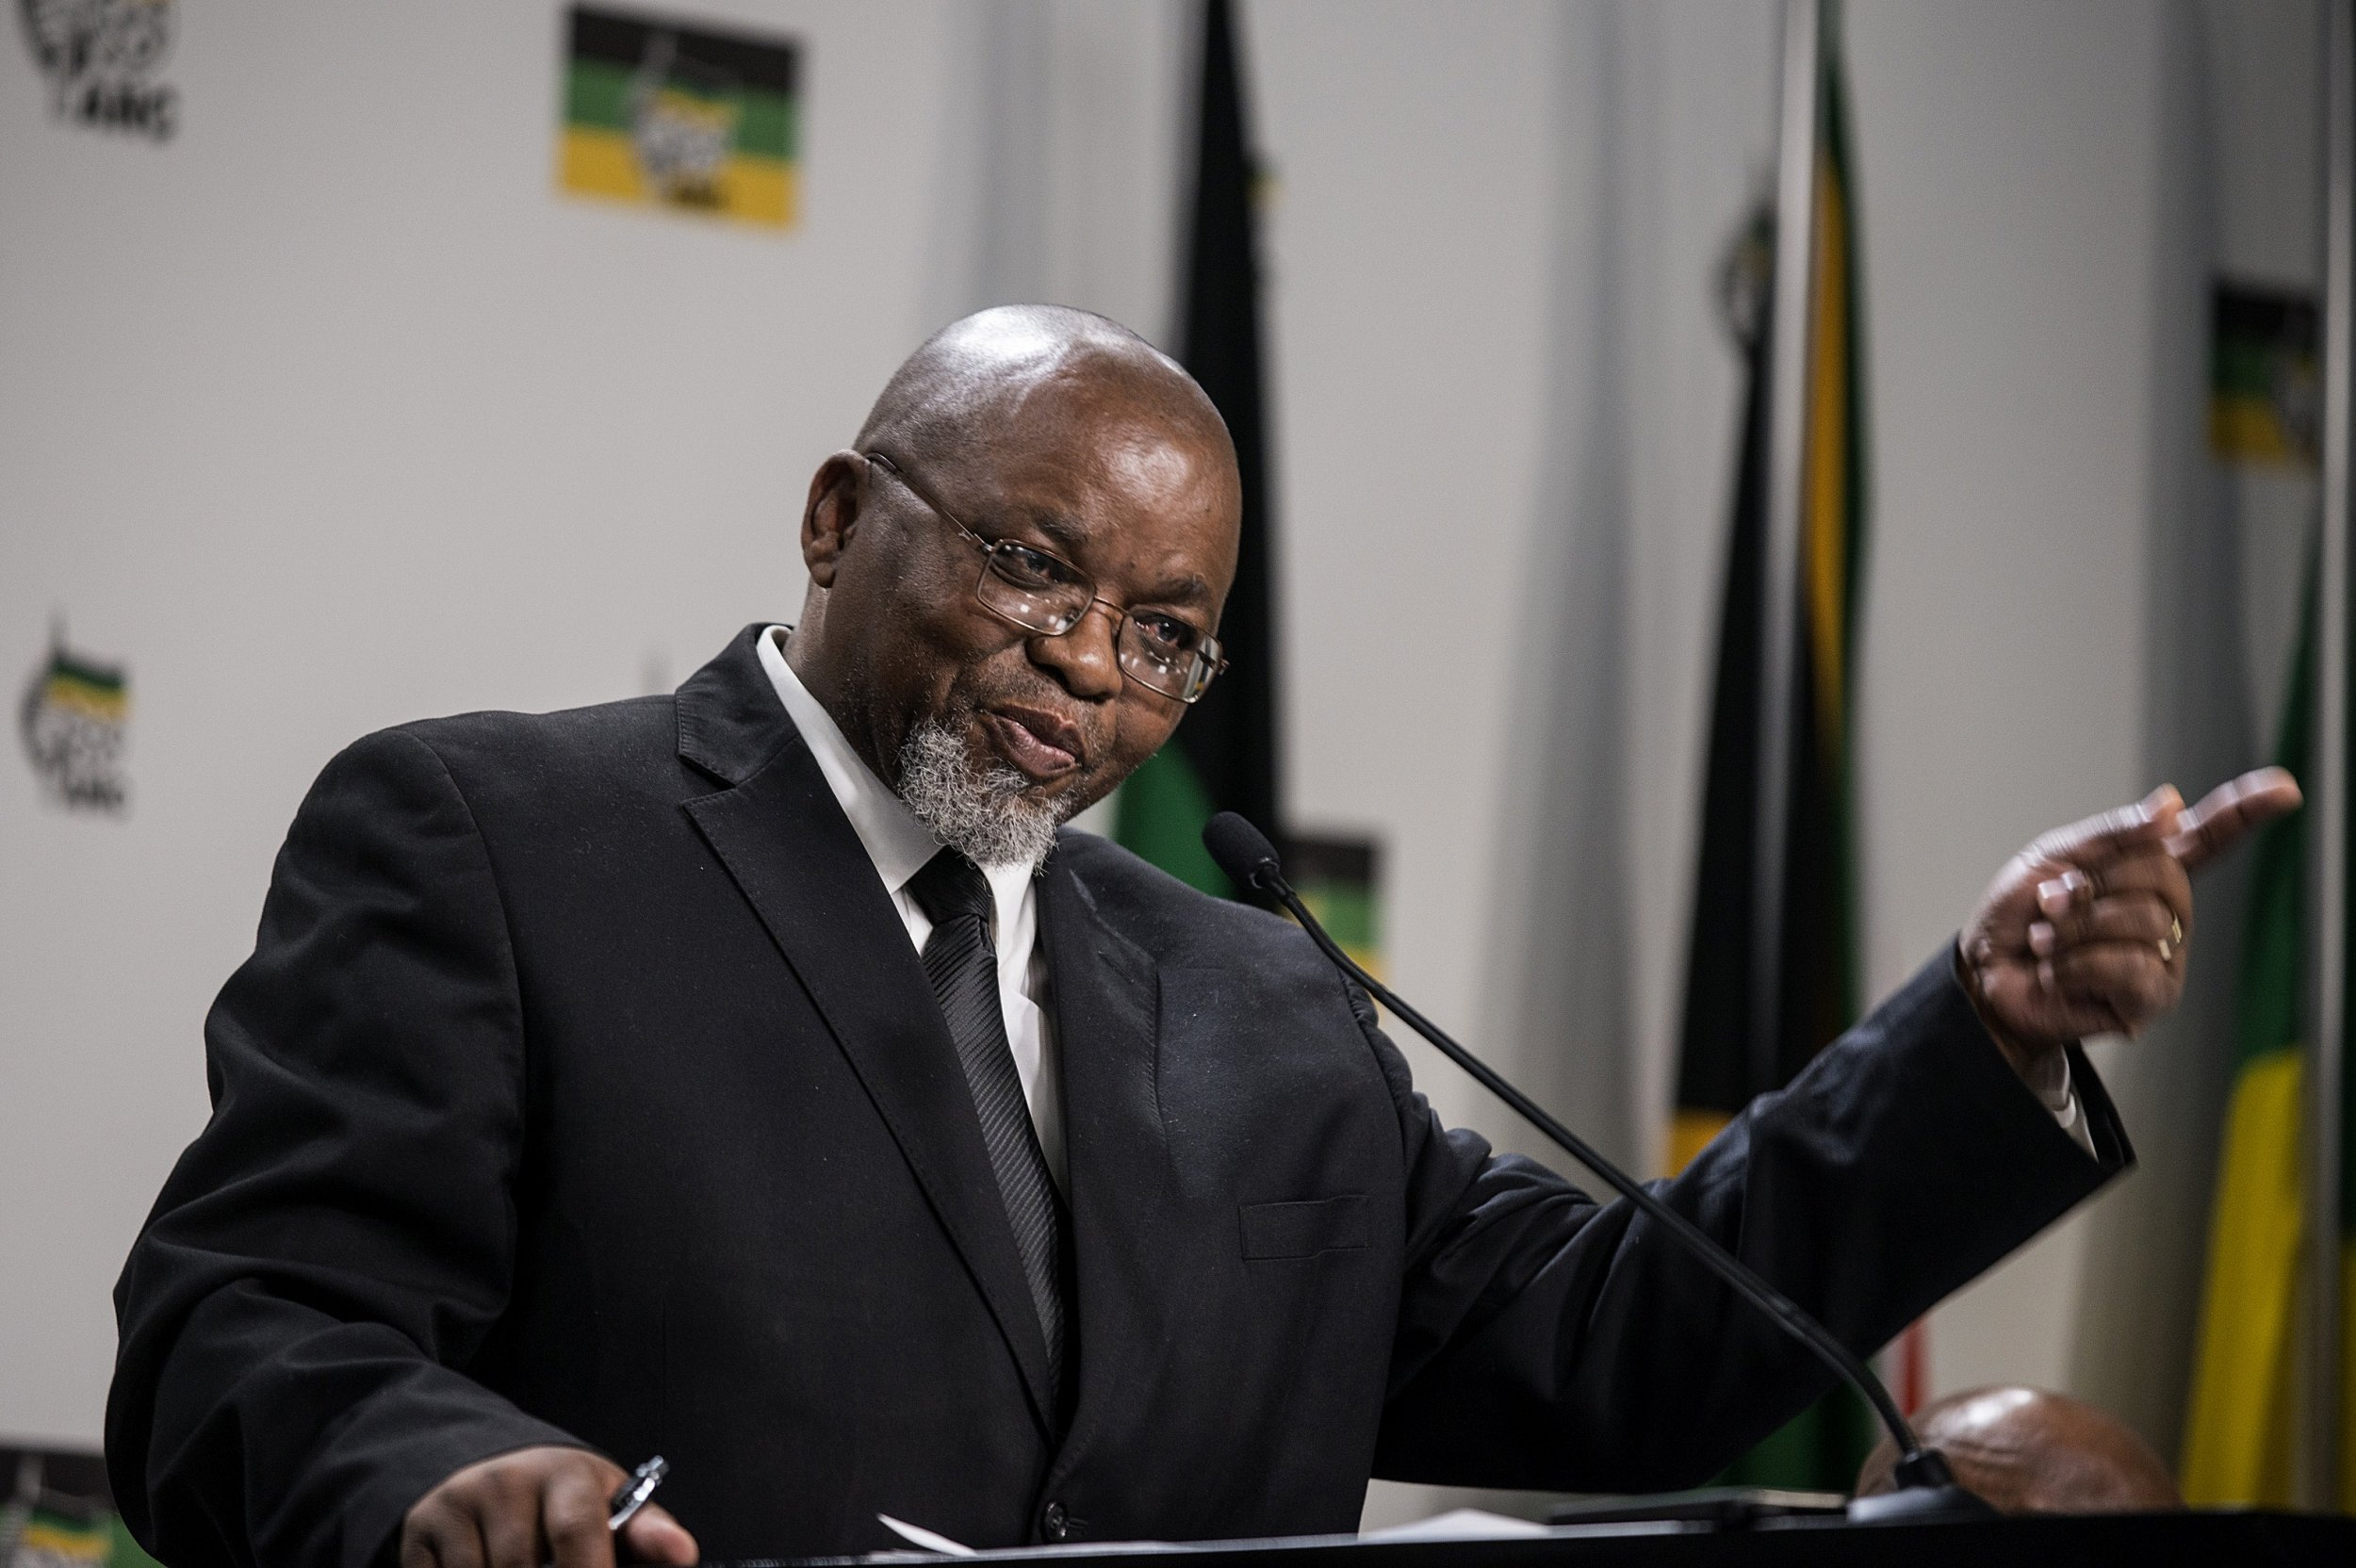 African National Congress secretary general Gwede Mantashe answers questions.